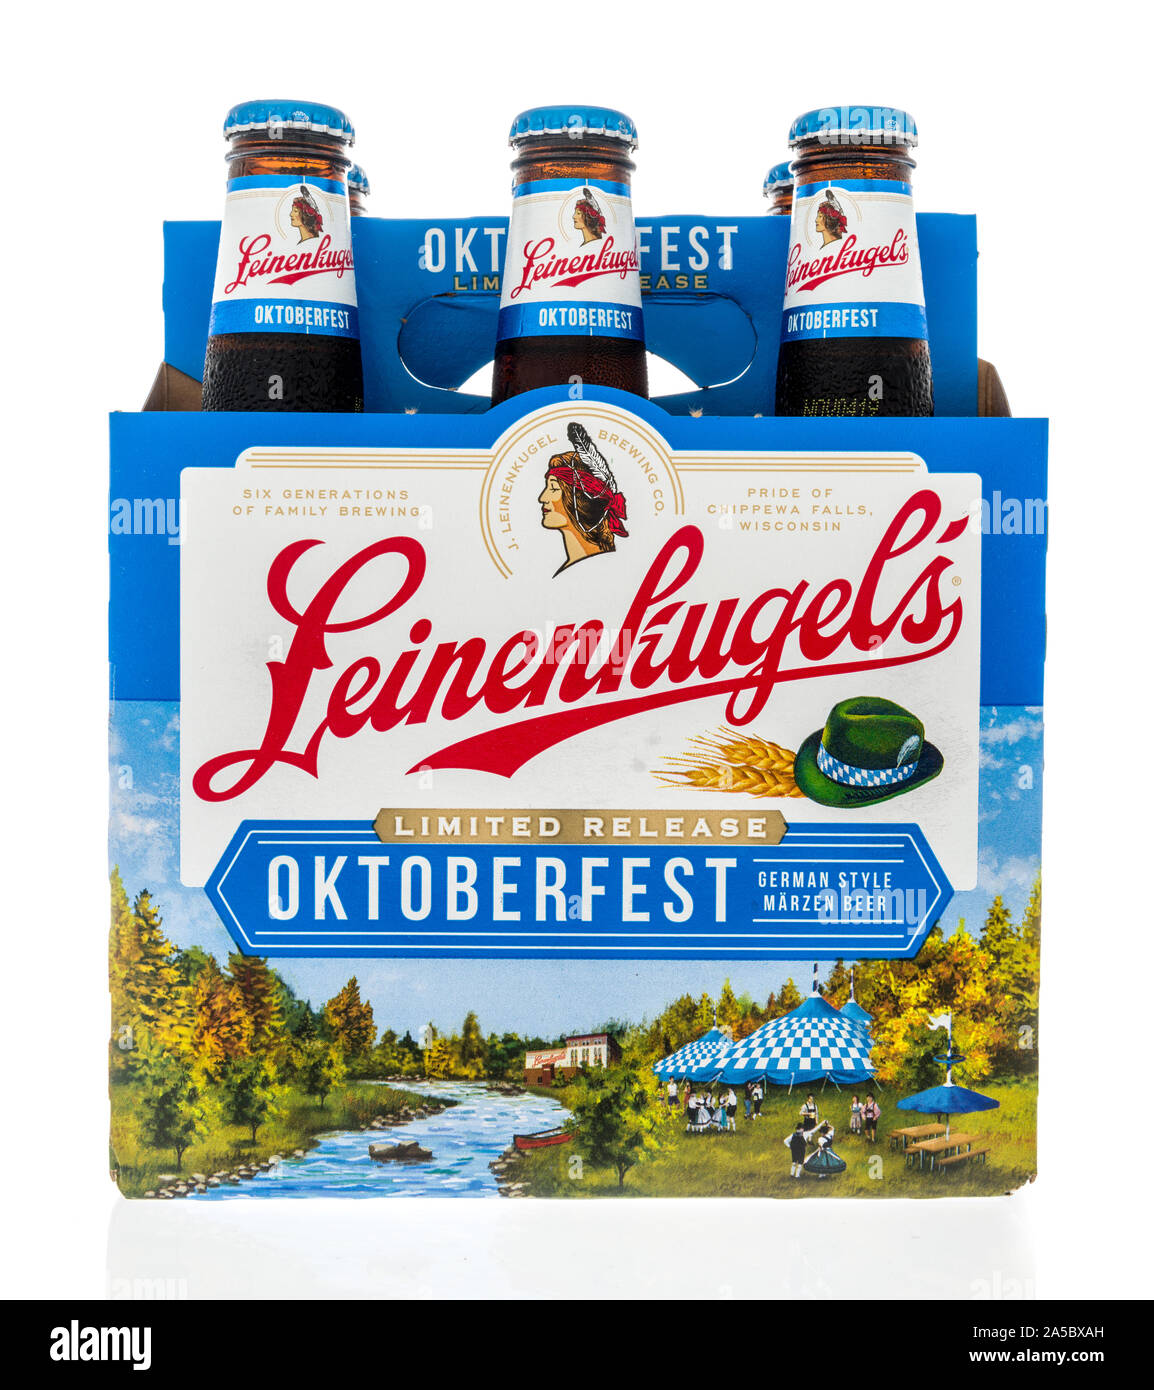 Winneconne, WI - 21 September 2019: A six pack of Leinenkugels Octoberfest beer on an isolated background. Stock Photo